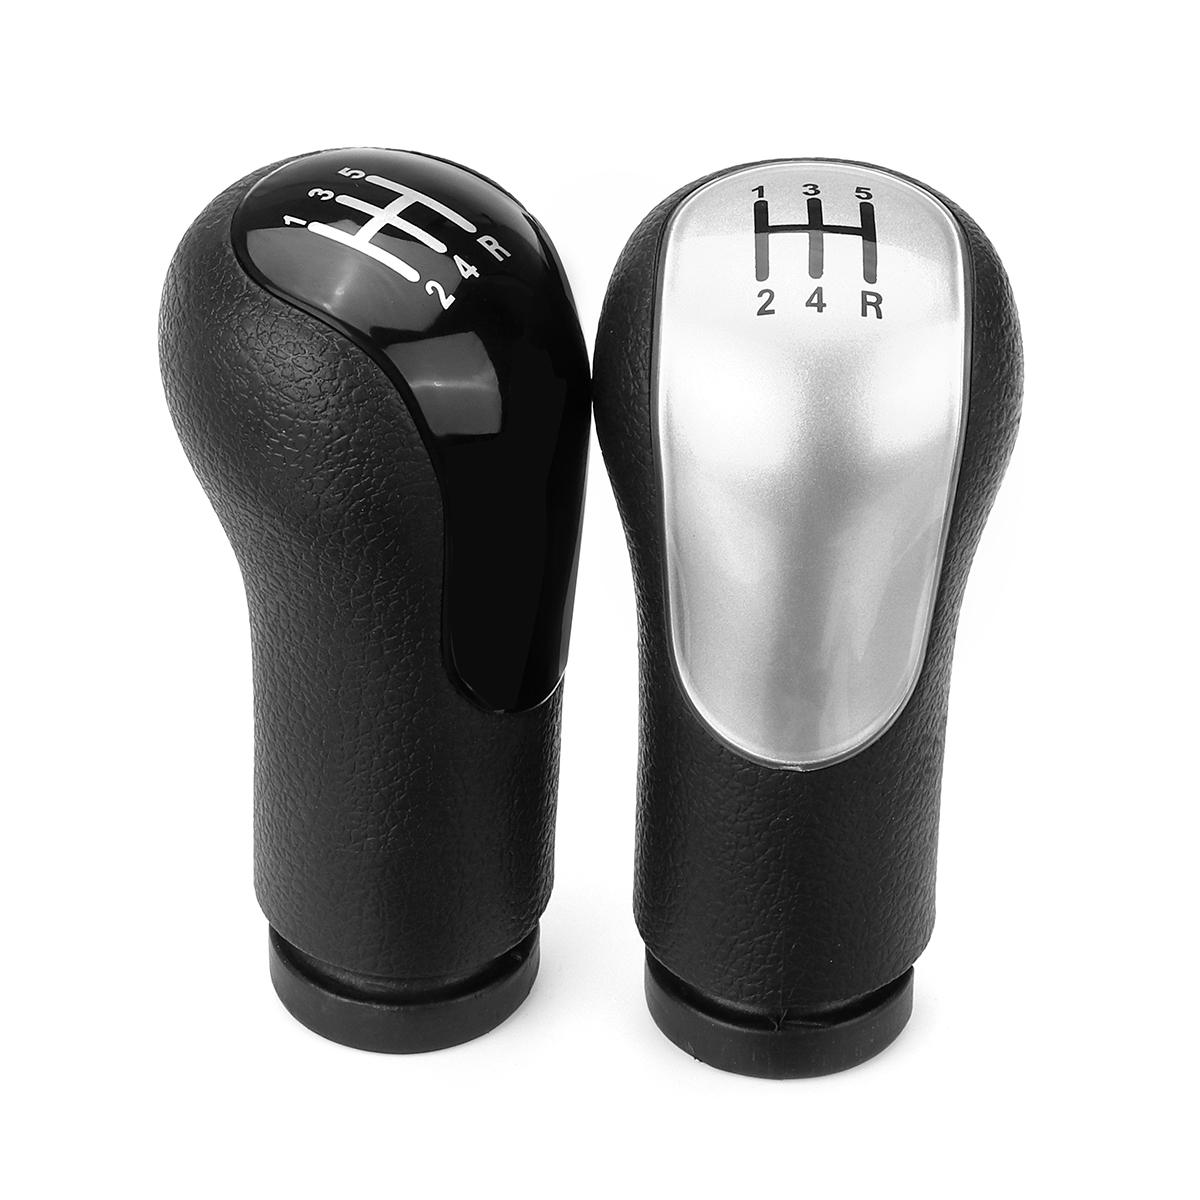 XMSM Gear Shift Knob For Ford For Fiesta Fusion Transit Connect Car 5-Speed Gear Shift Knob Shifter Lever Handball Gear Stick Shift Knob Handle Head